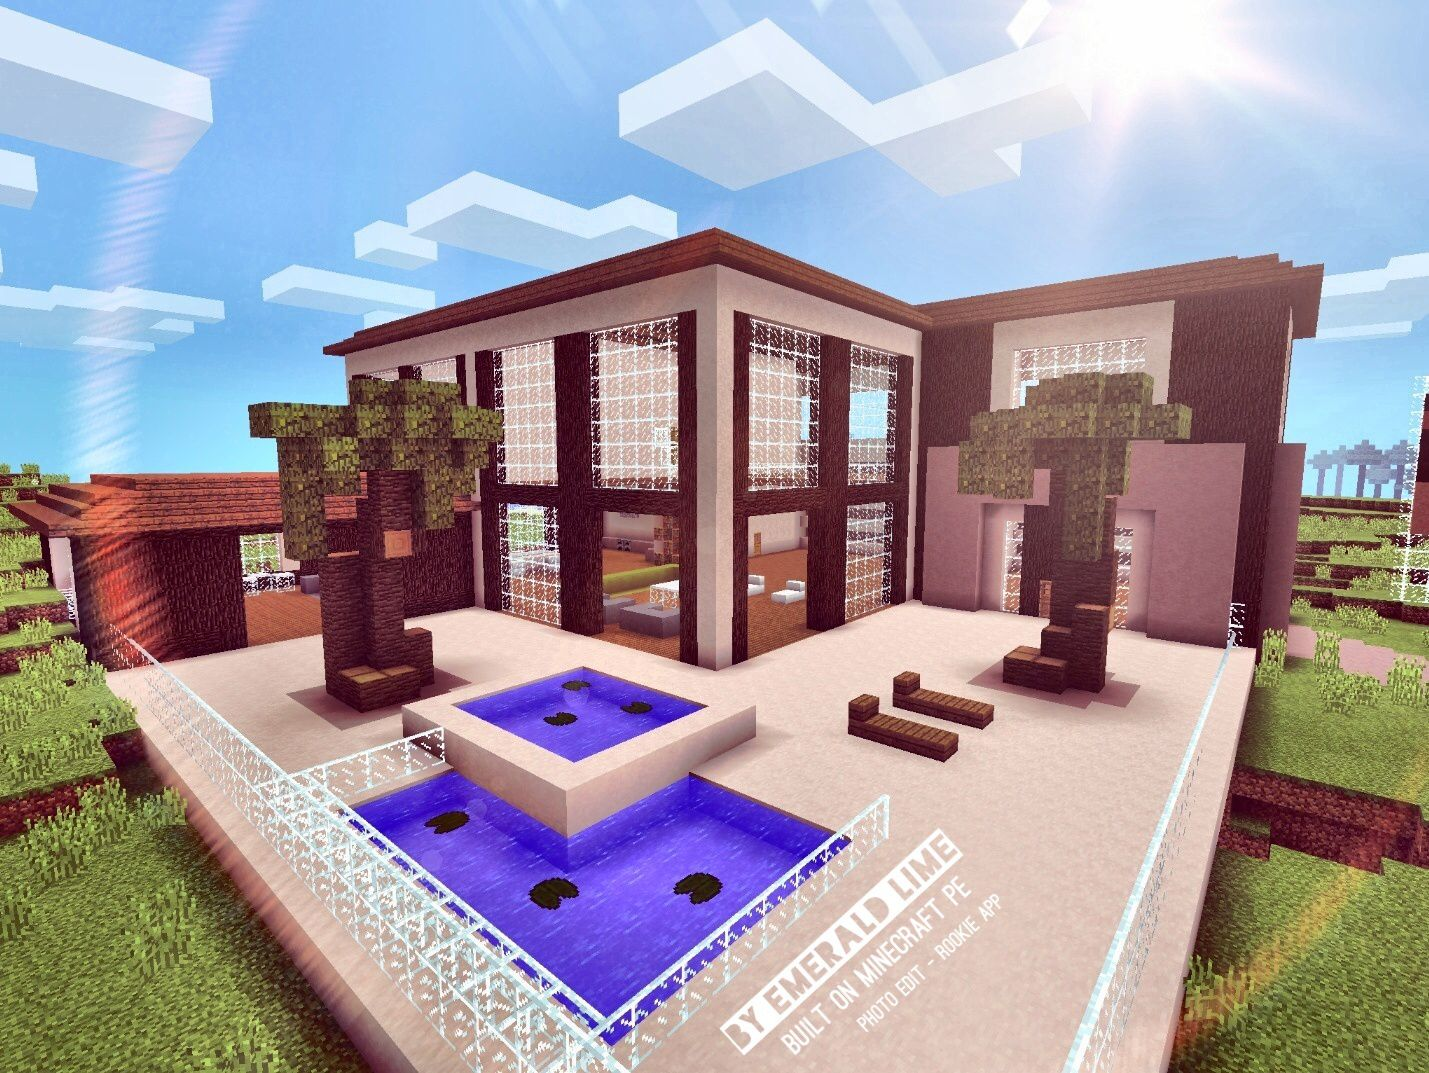 Modern house built and designed by emerald lime made on minecraft pe photo edit rookie app